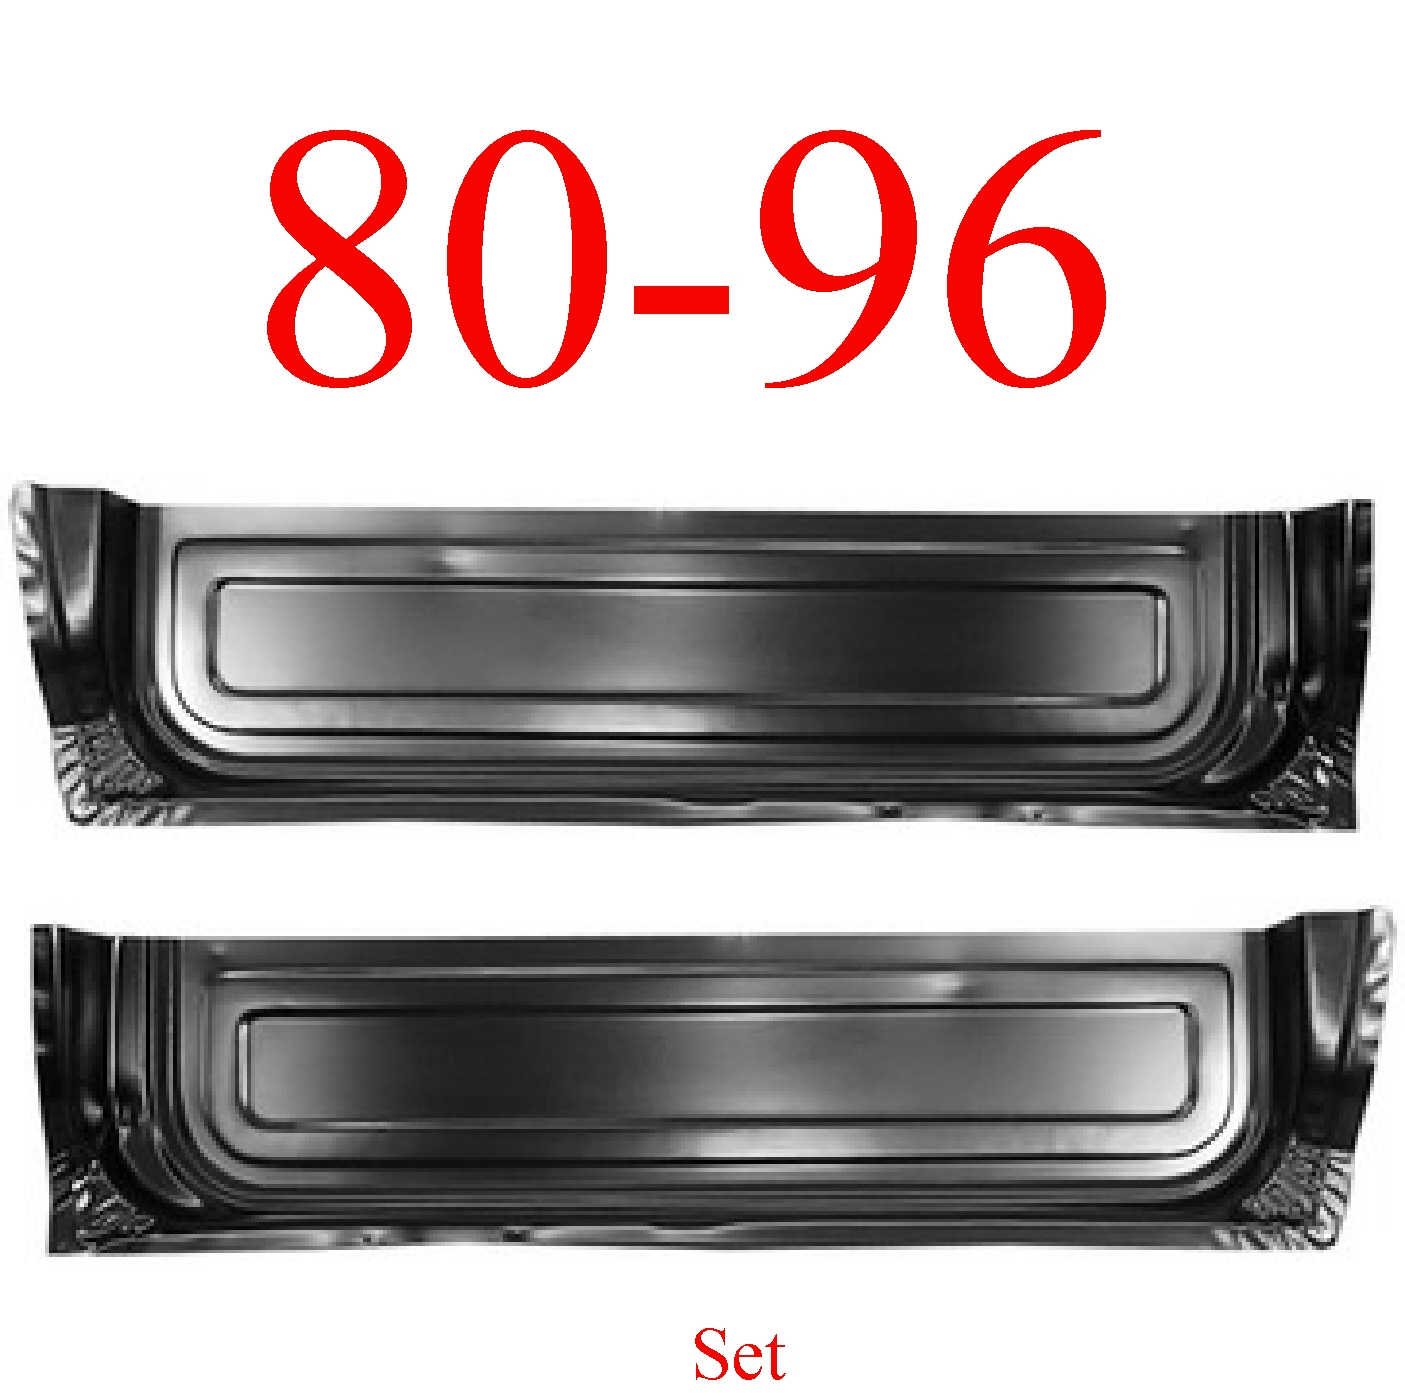 80-96 Ford Door Inner Bottom Set